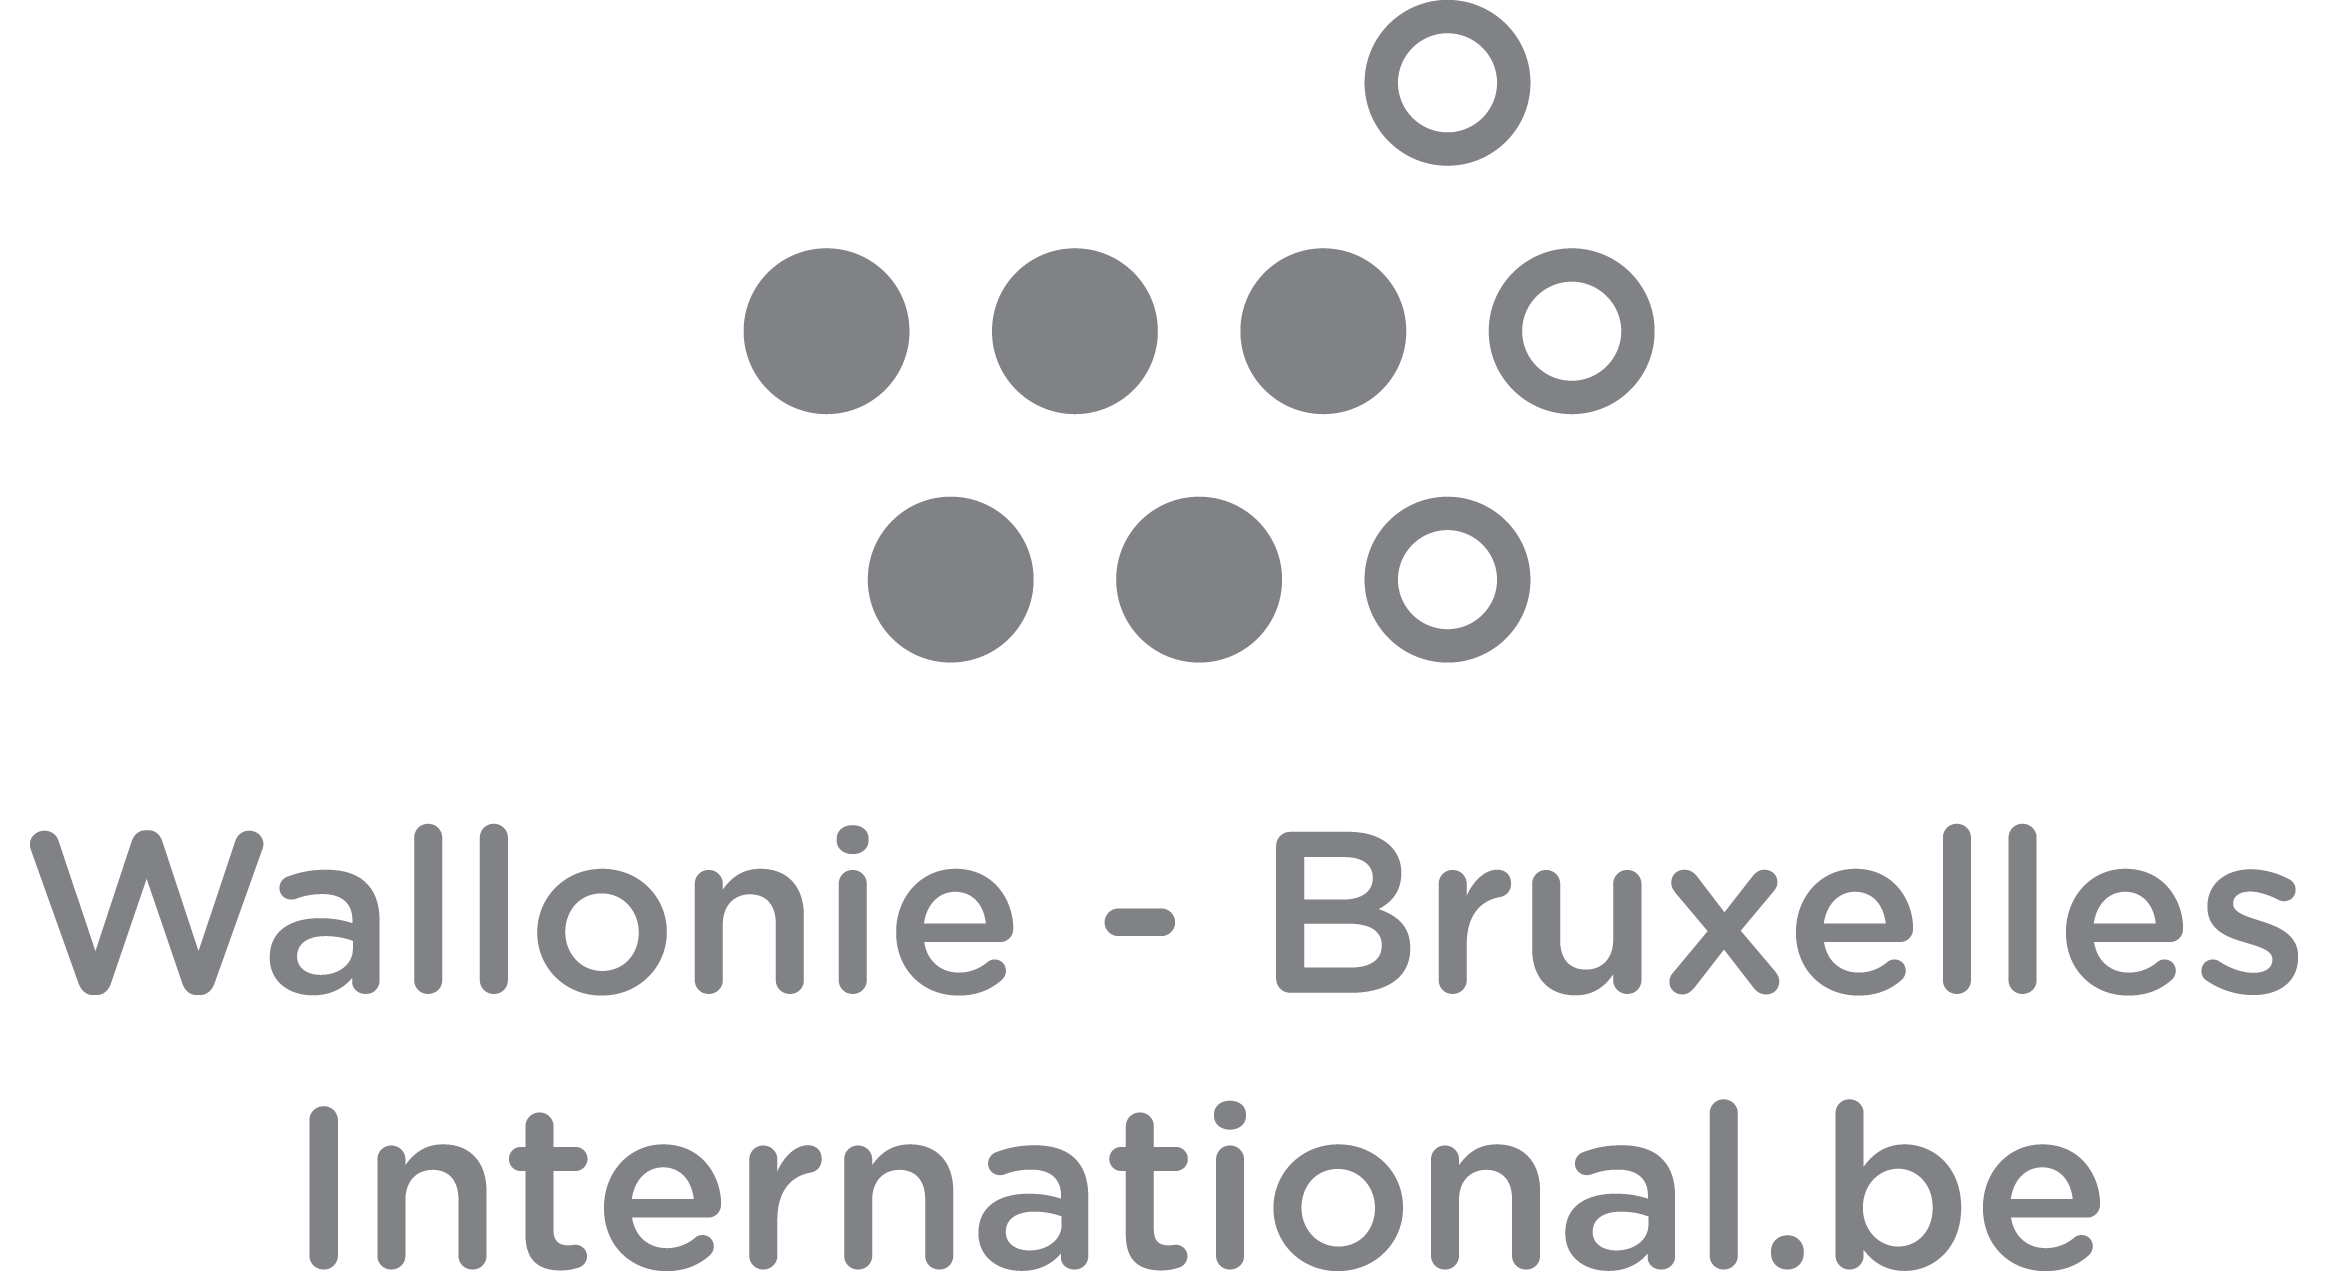 Wallonie_bruxelles_international